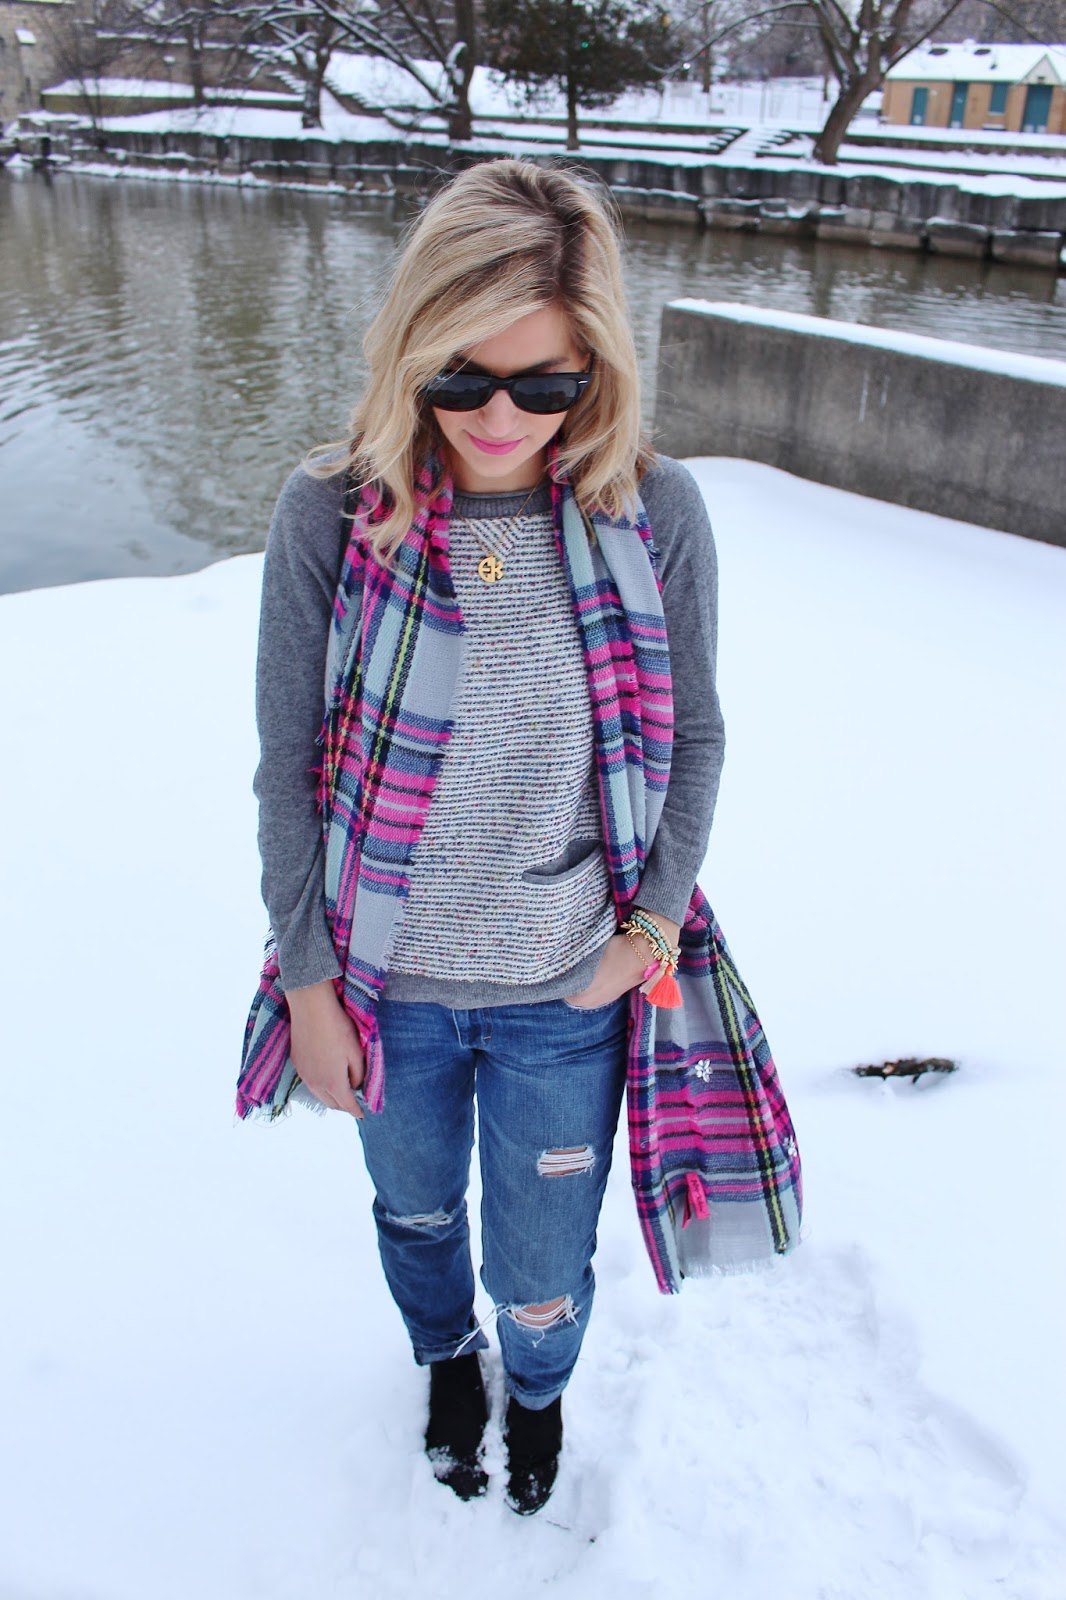 bijuleni- Boyfriend jeans with plaid colourful scarf and sweater